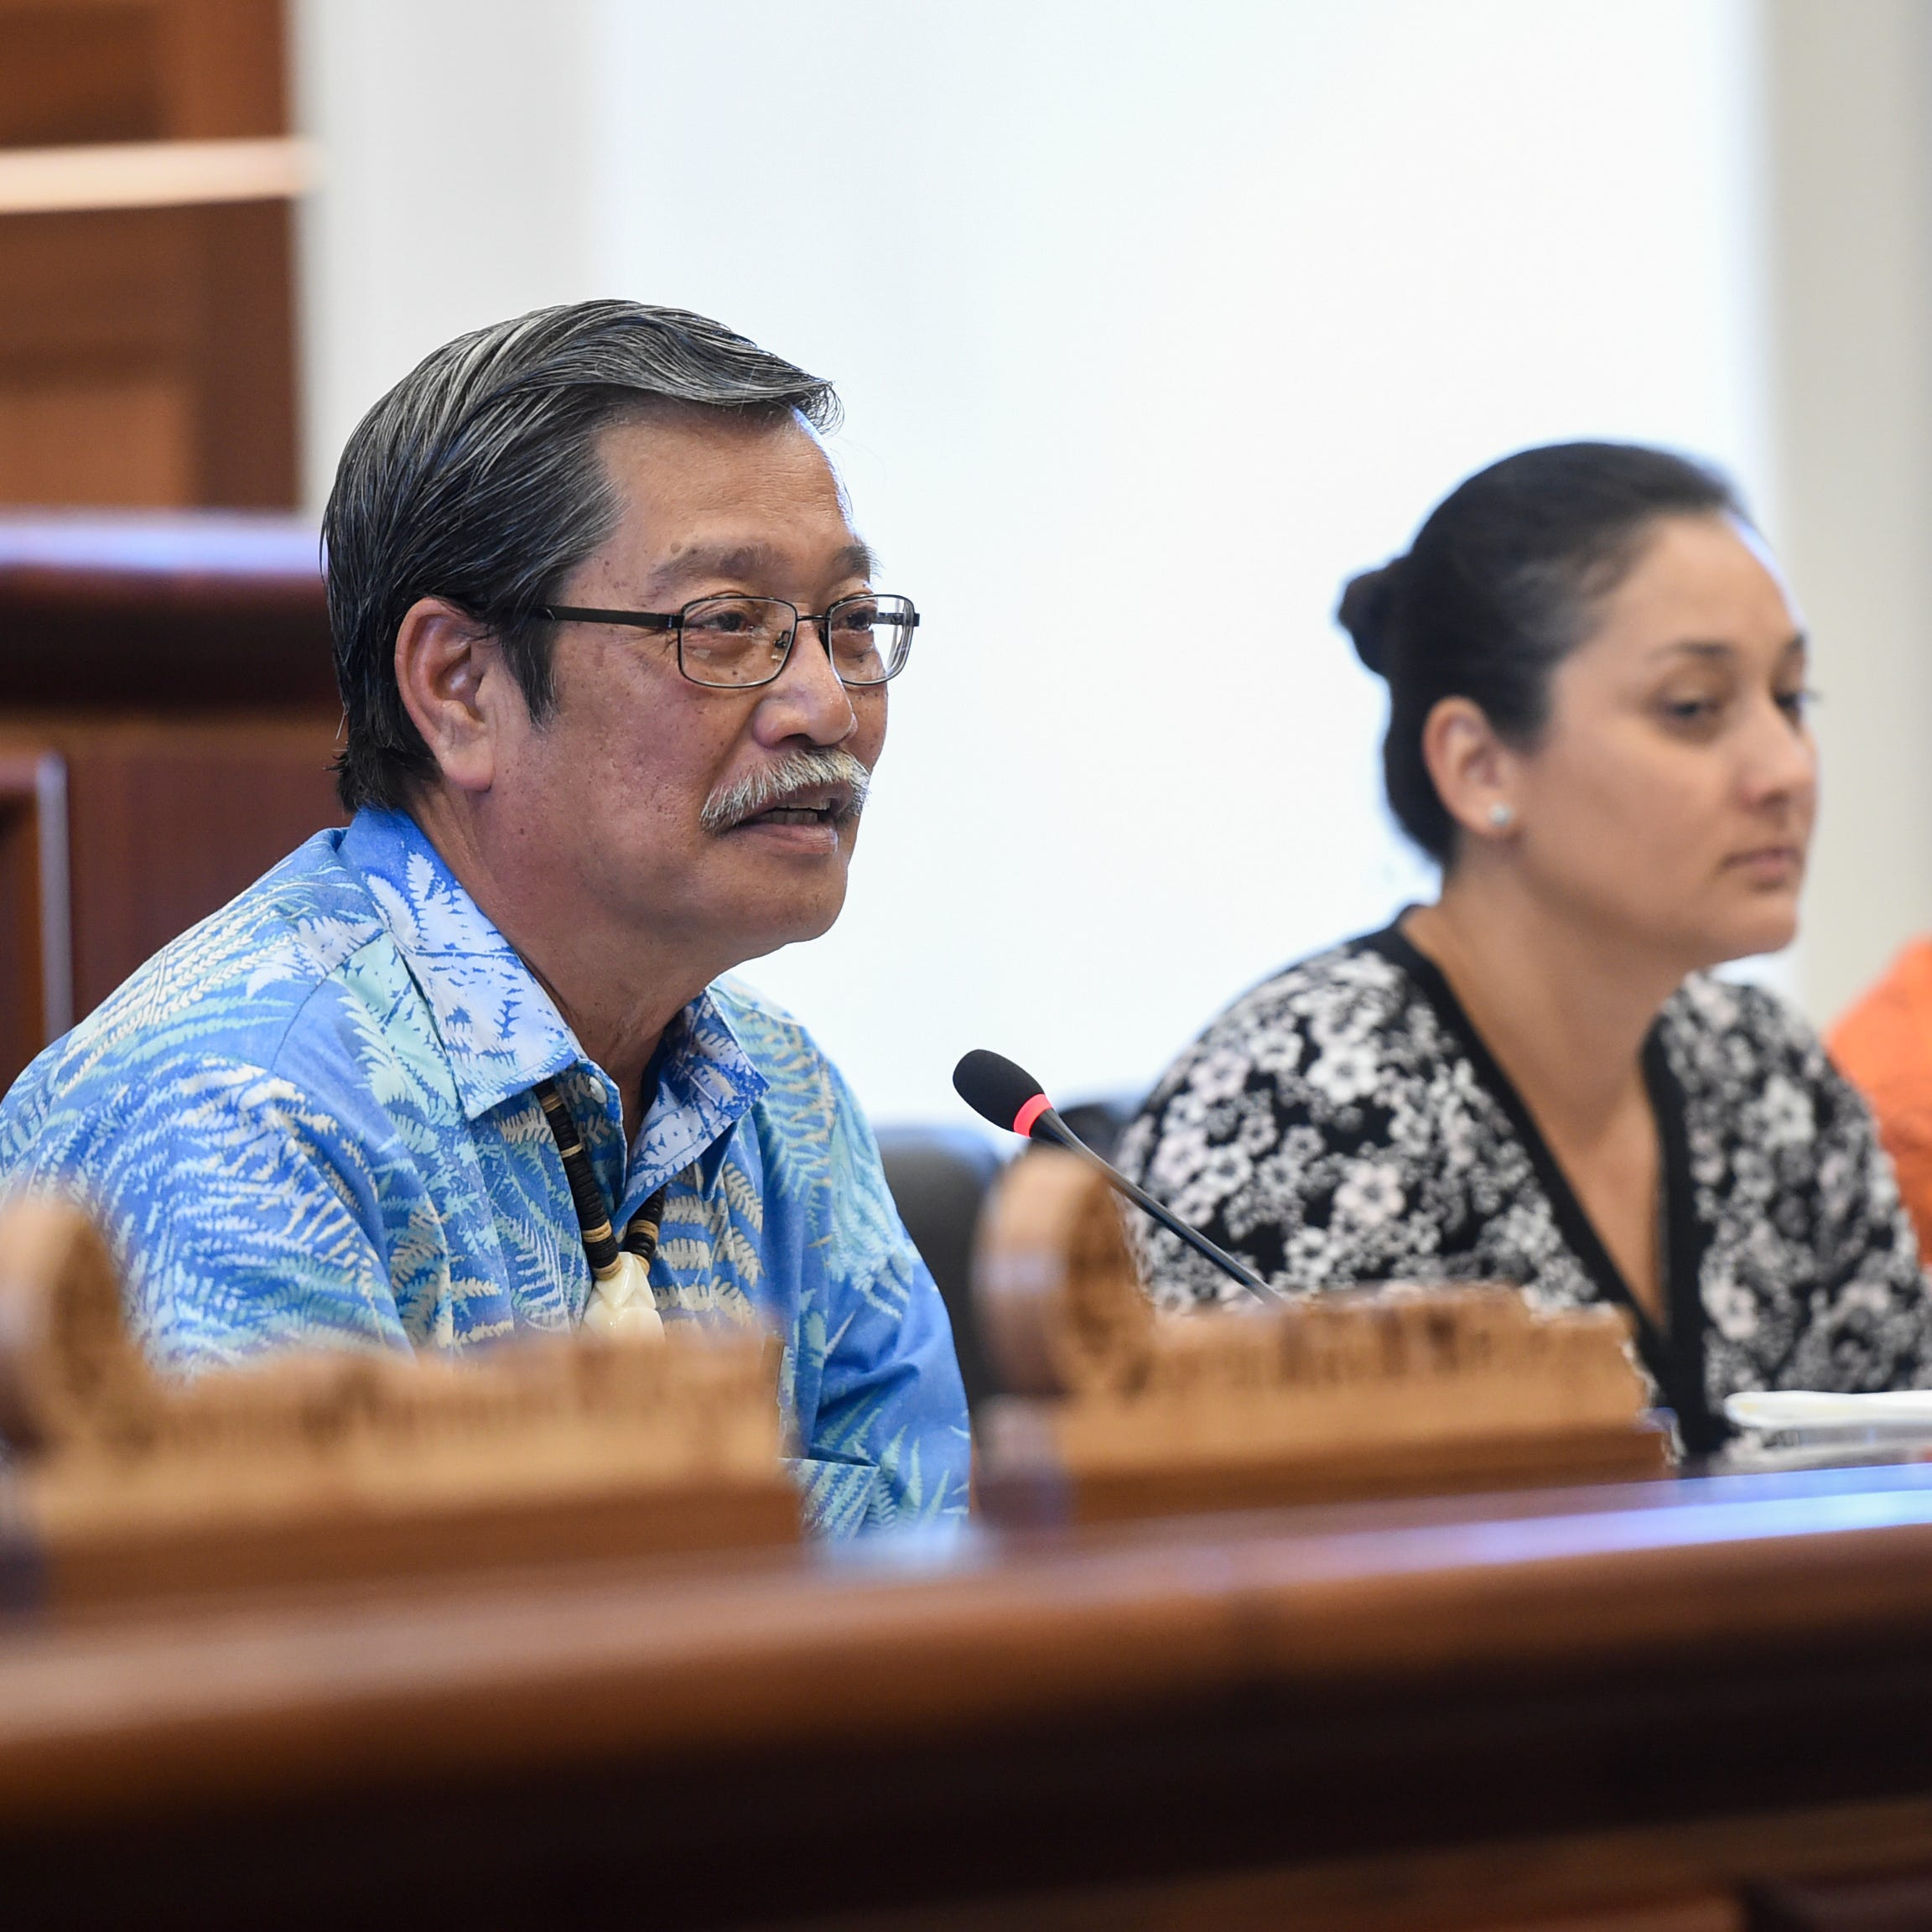 Sen. Joe San Agustin asks for input on raising minimum wage to $9.25